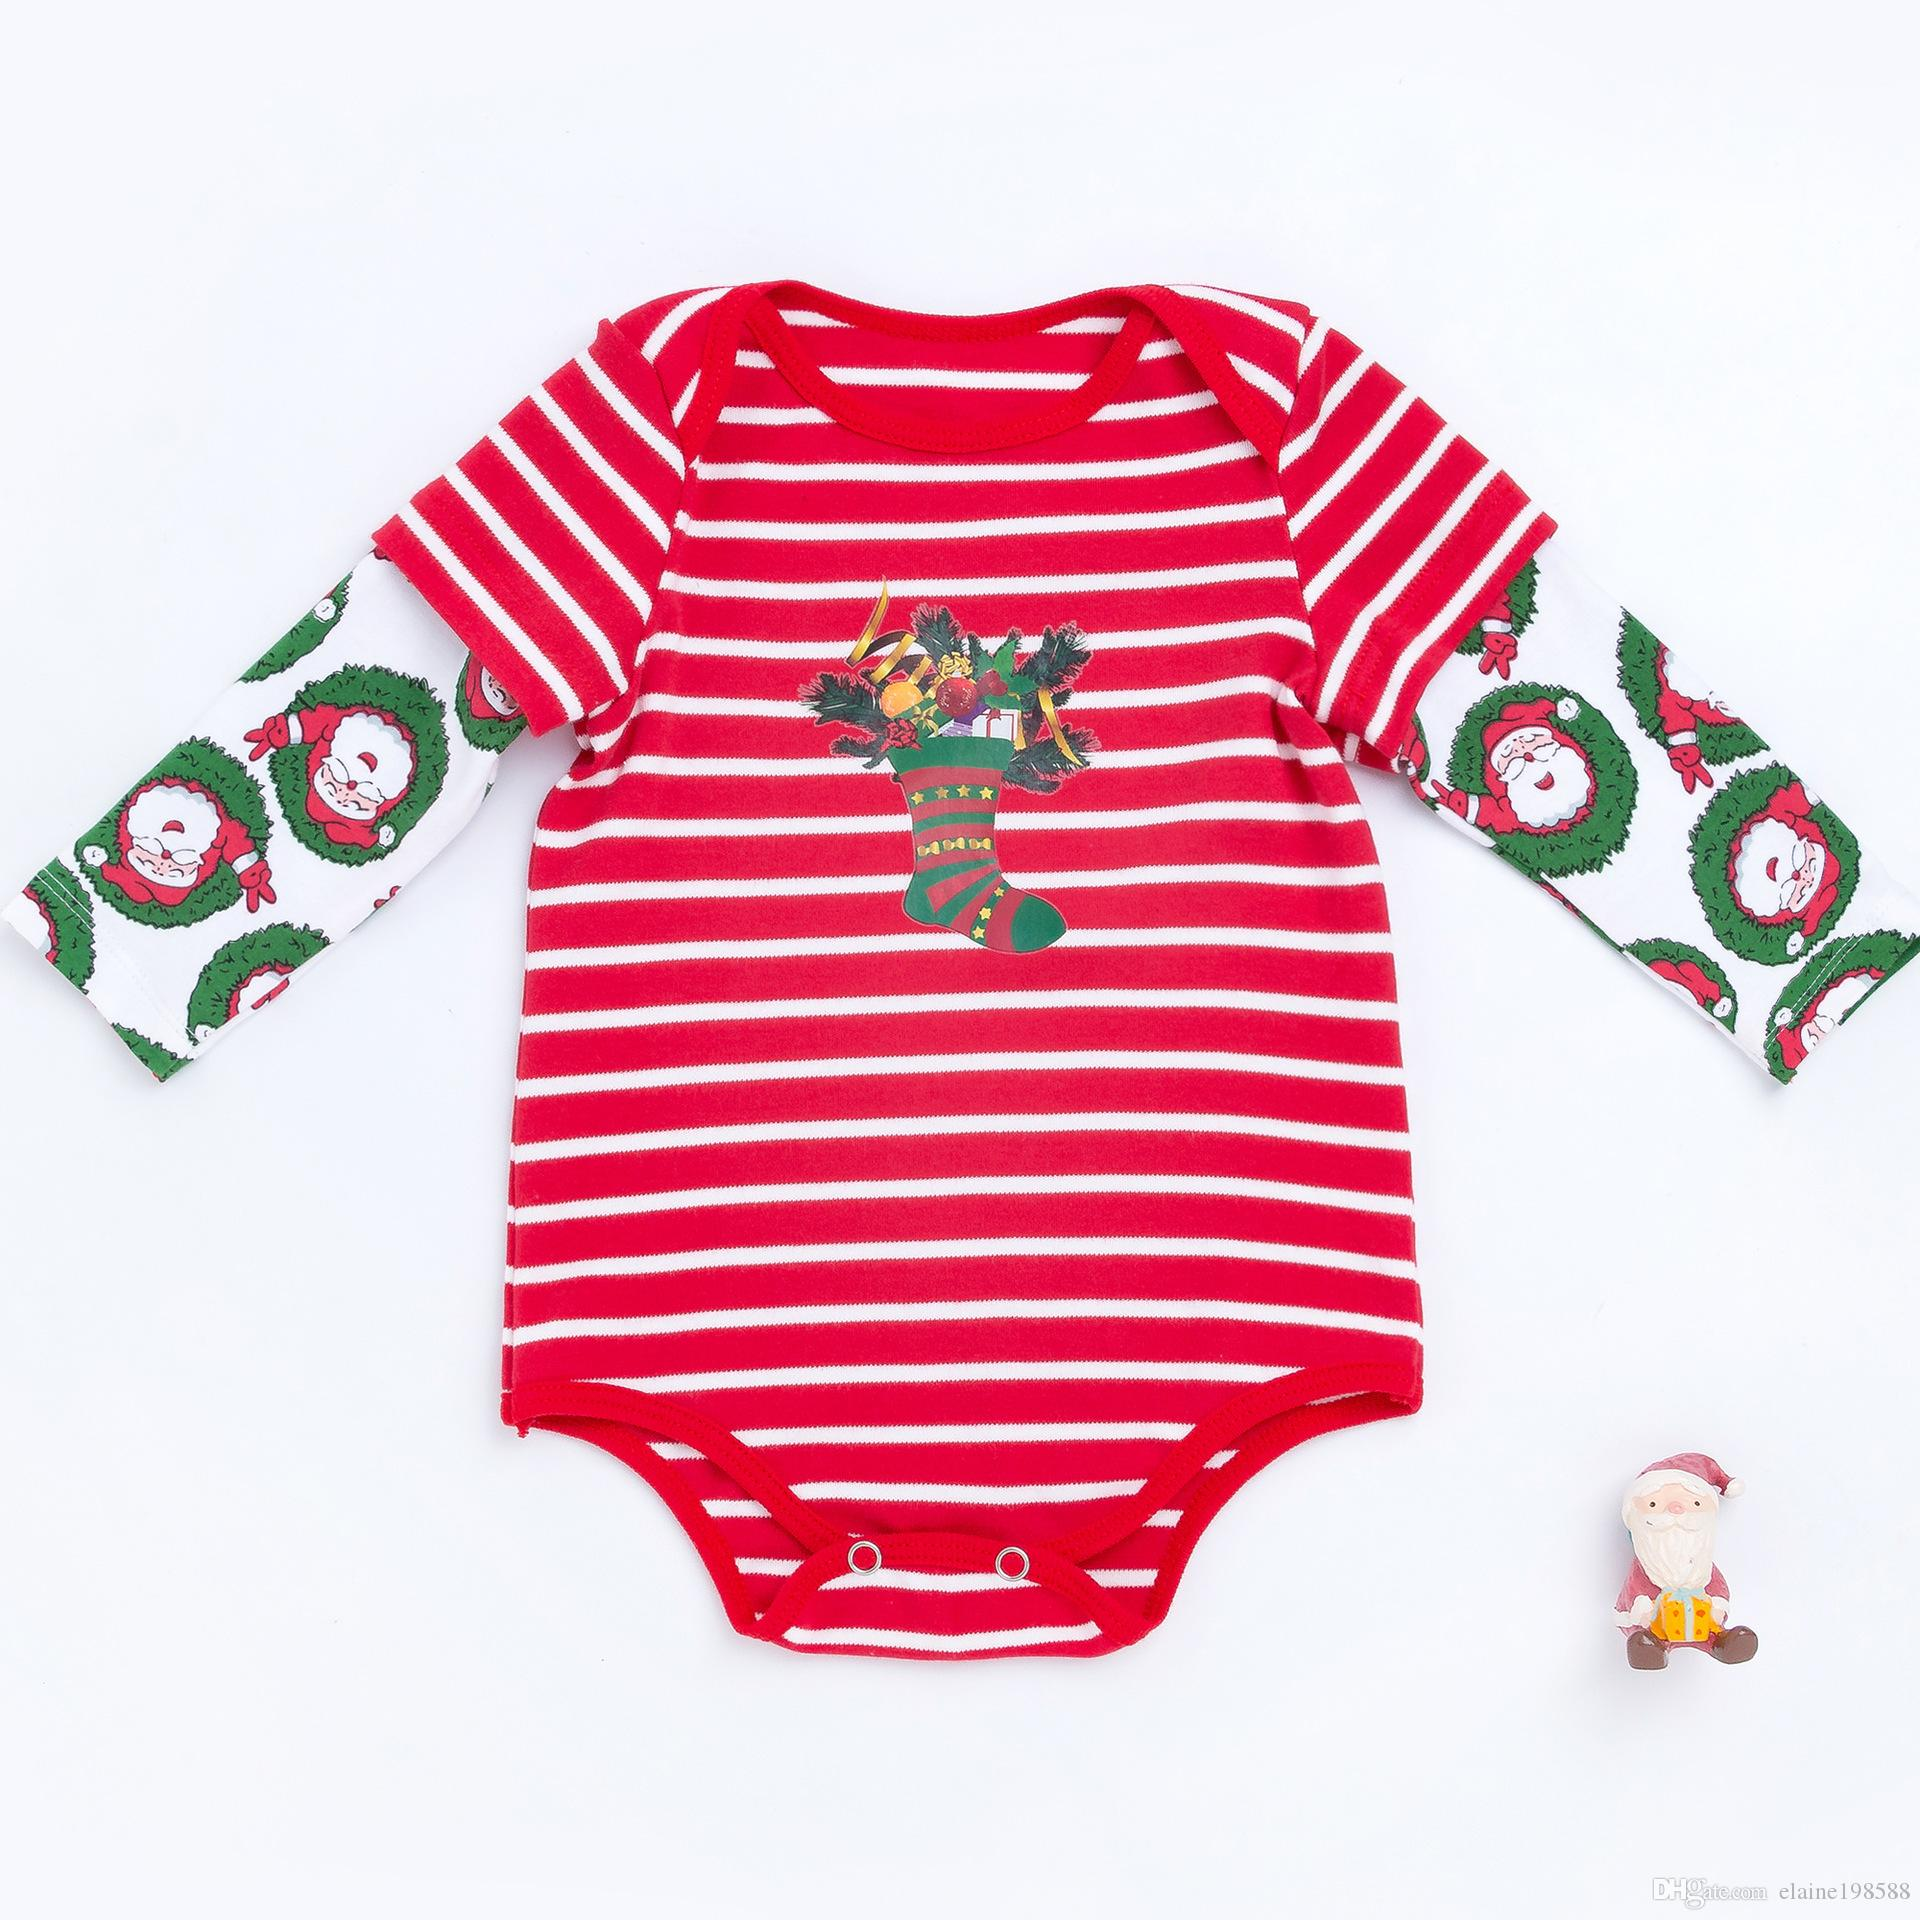 9f7c9d42651 2019 Christmas Baby Bodysuits Autumn Winter Cotton Full Sleeves Baby  Jumpsuits 0 24 Months Newborn Infant Santa Claus Rompers Xmas Party Costume  From ...